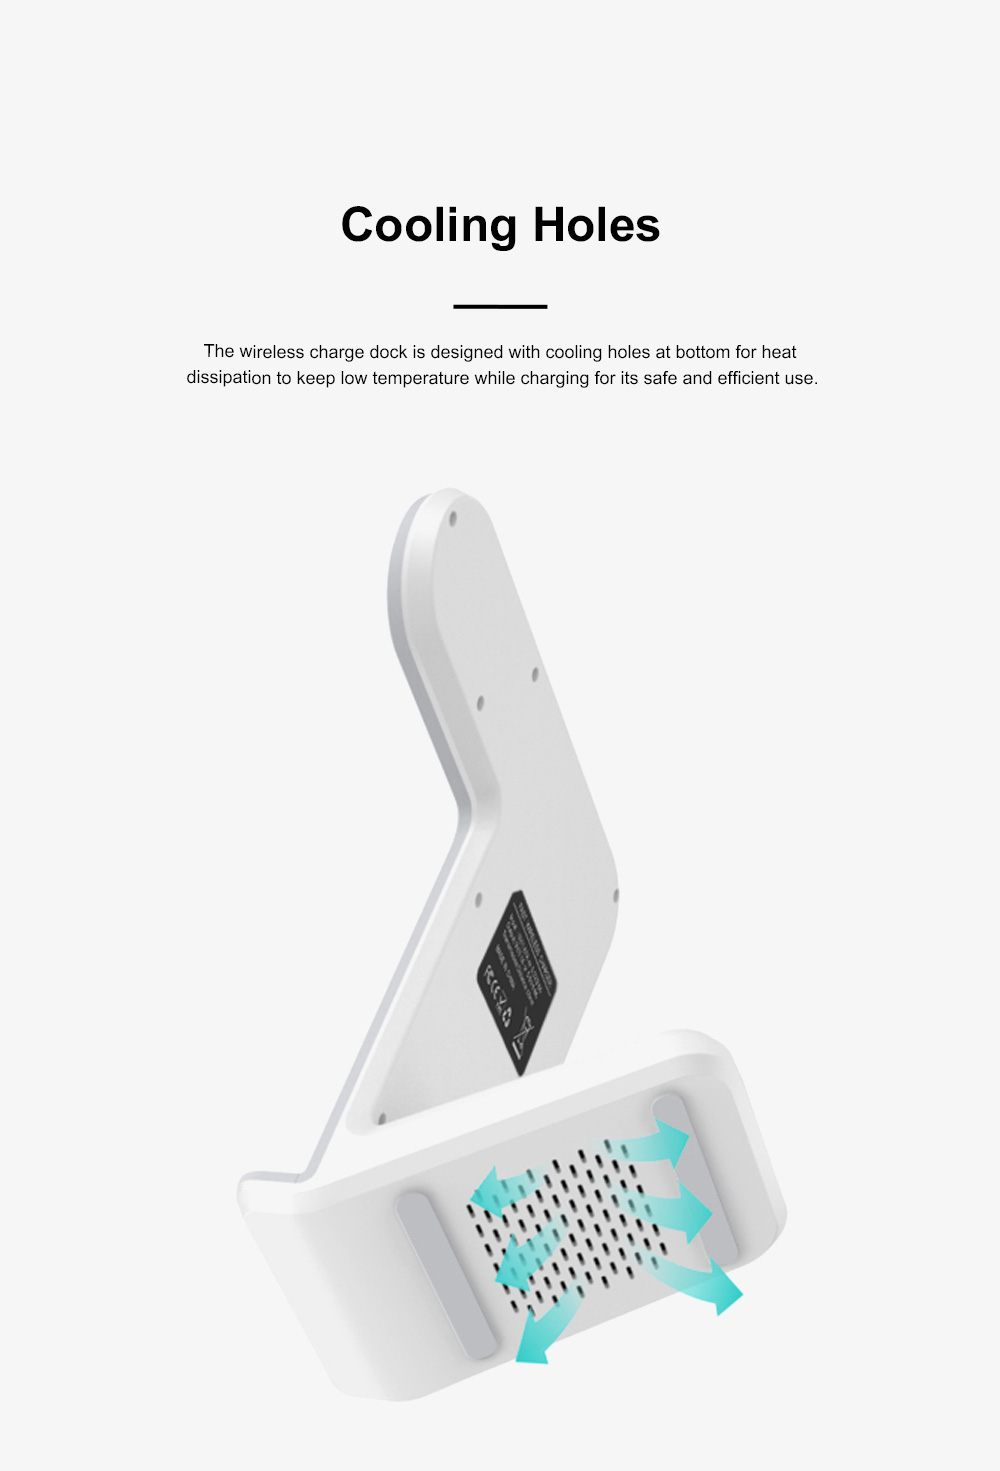 Vertical Wireless Charger Upright Quick-acting Two in One Recharger Compatible for iPhone X iWatch Samsung Wireless Charge Dock 4